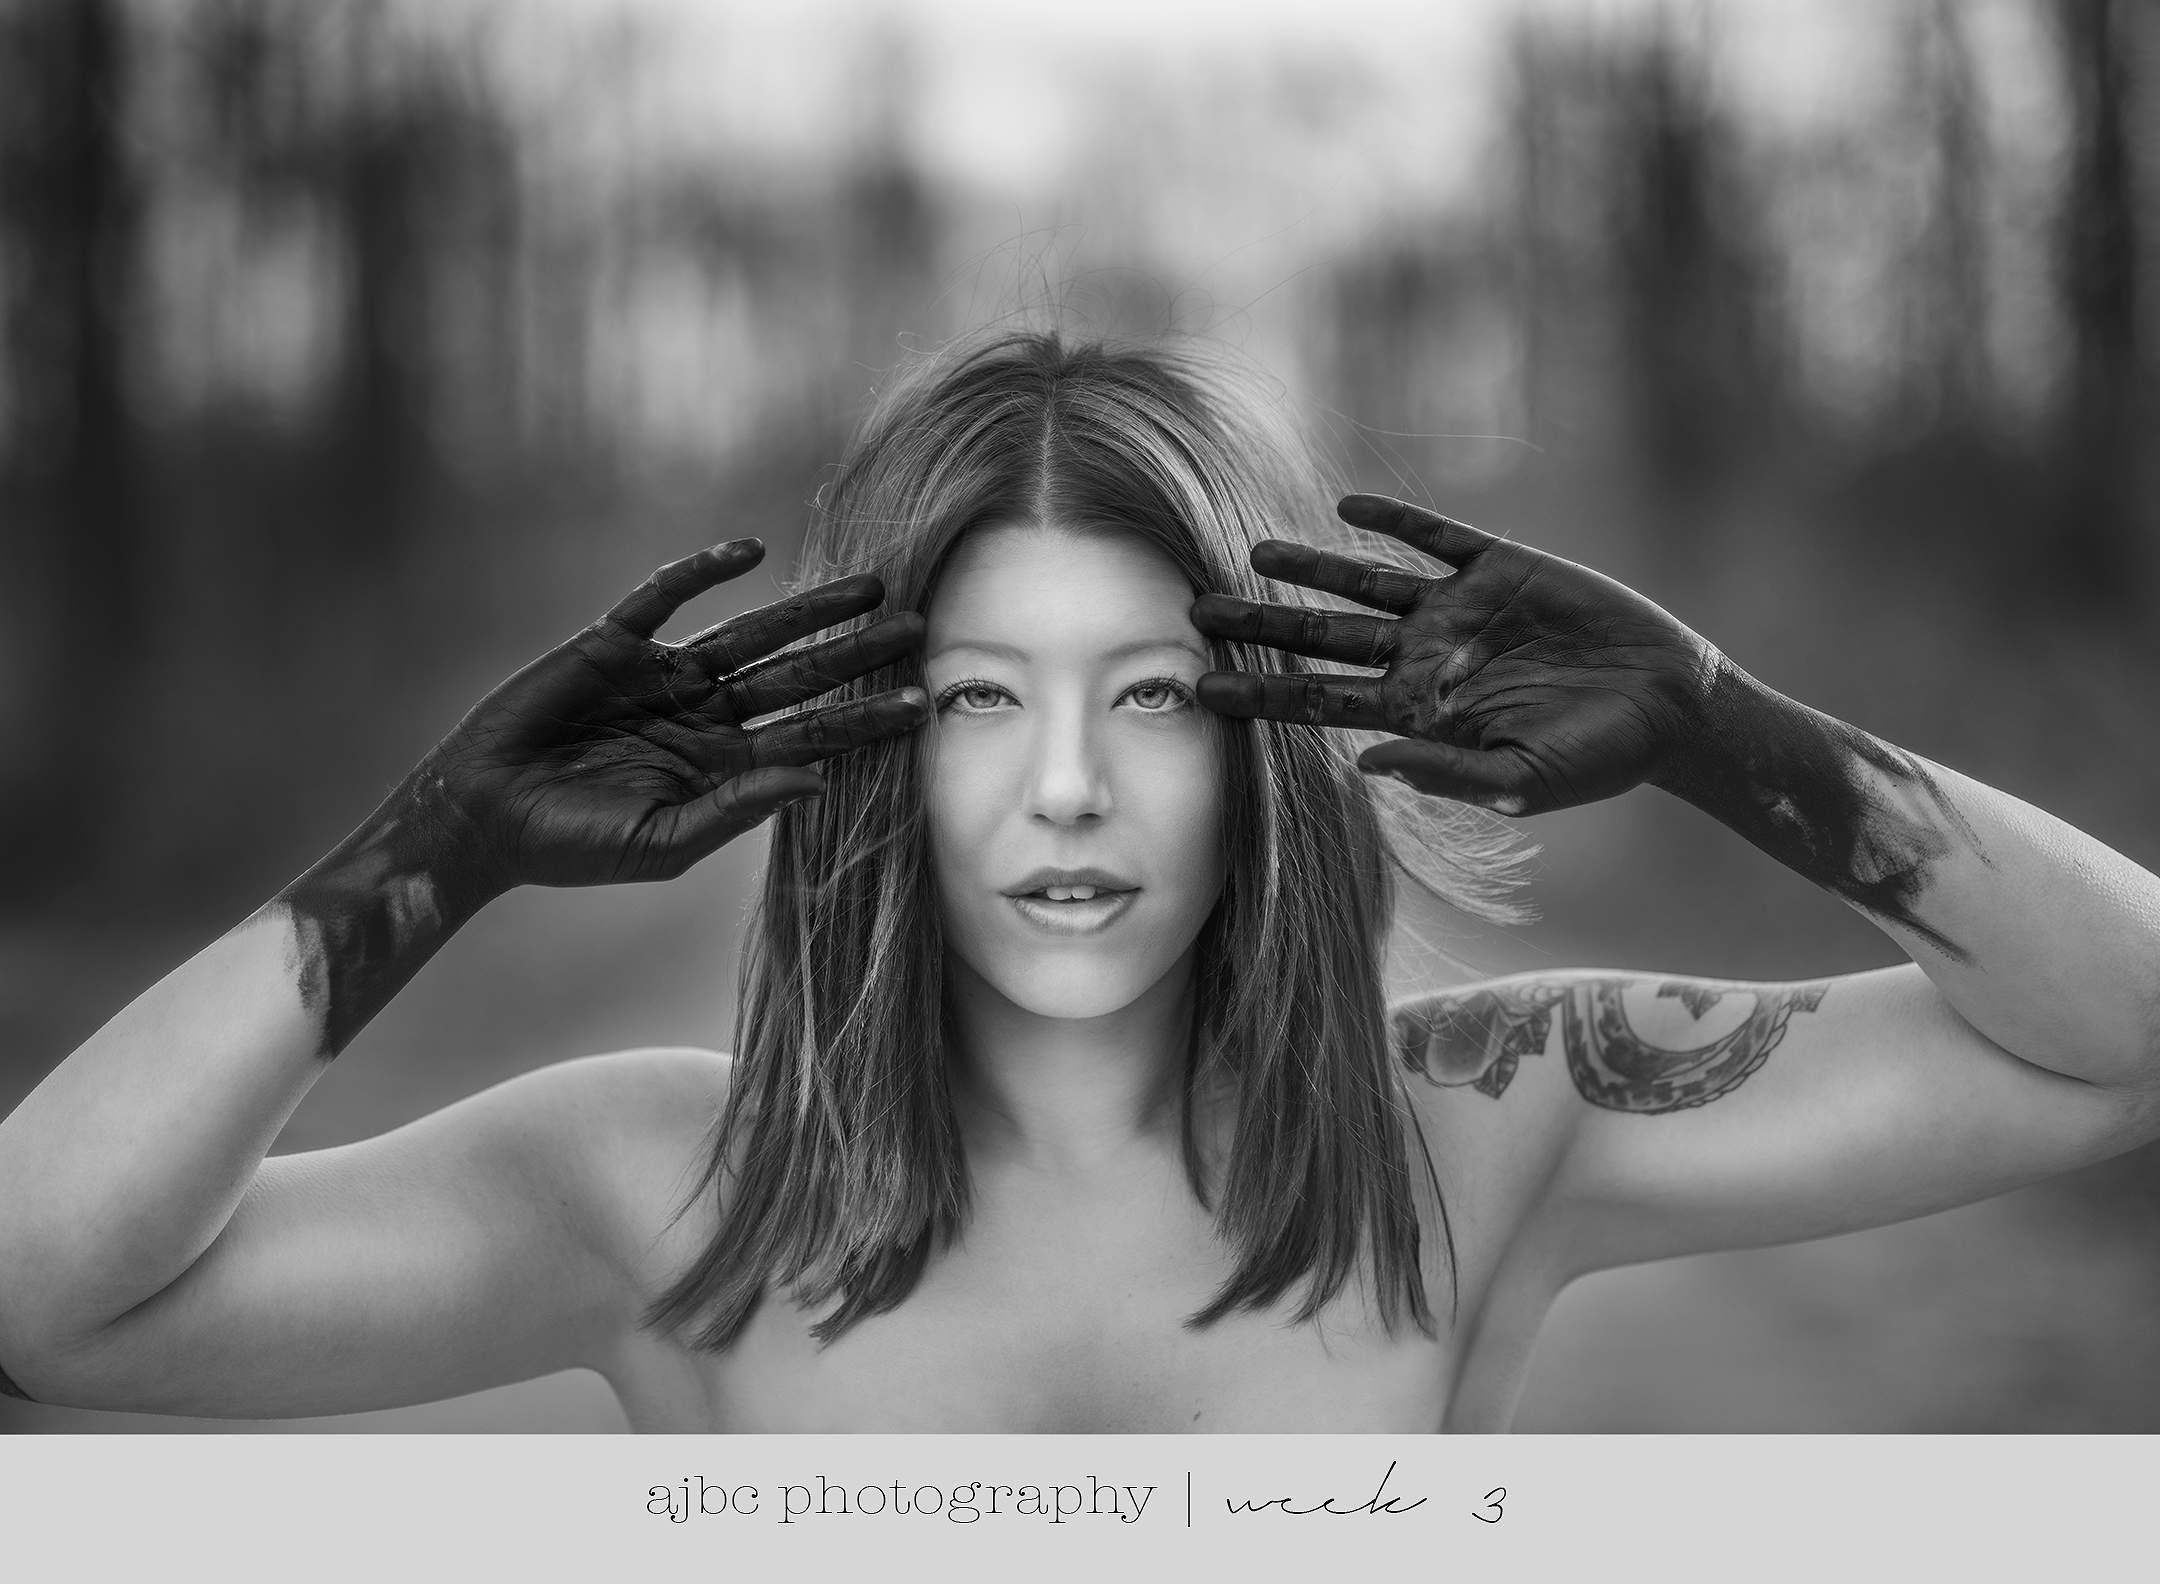 AJBCPhotography-artistic-porthuron-photographer-michigan-blackandwhite.png